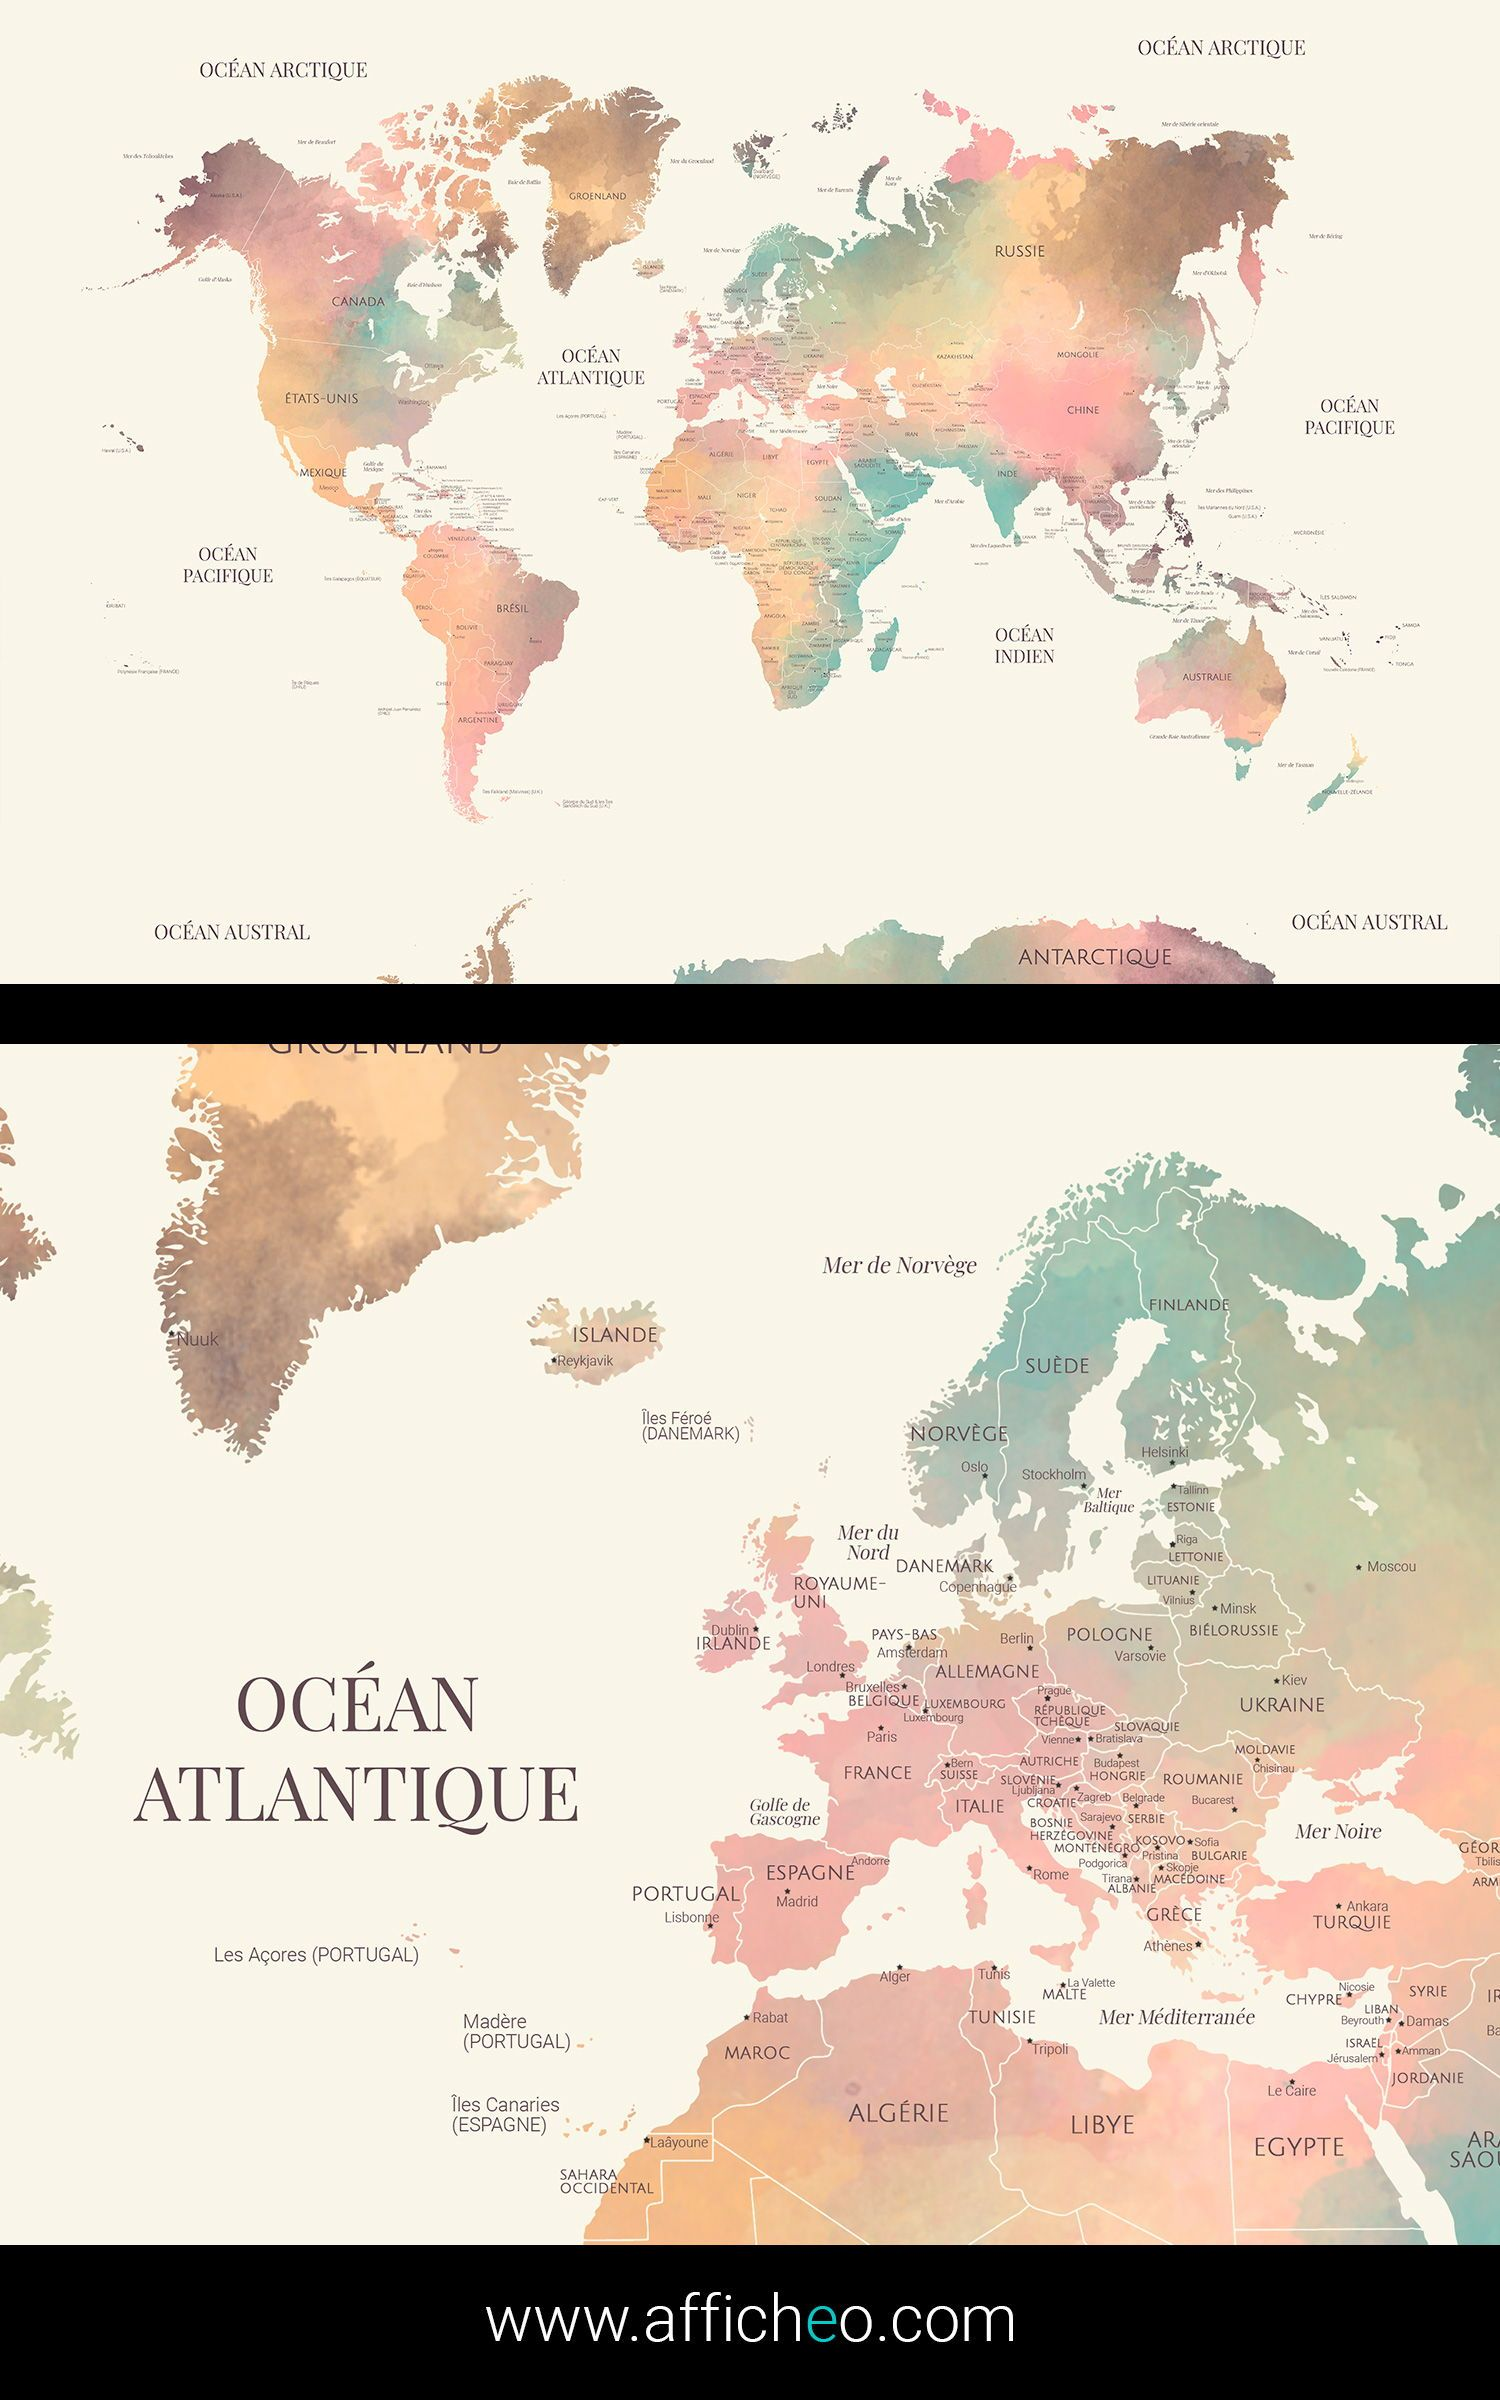 Carte Du Monde Grand Format : carte, monde, grand, format, World, English, Countries, Borders, Their, Capitals,, Colorful, Watercolor, Effect., Walls,, Effects